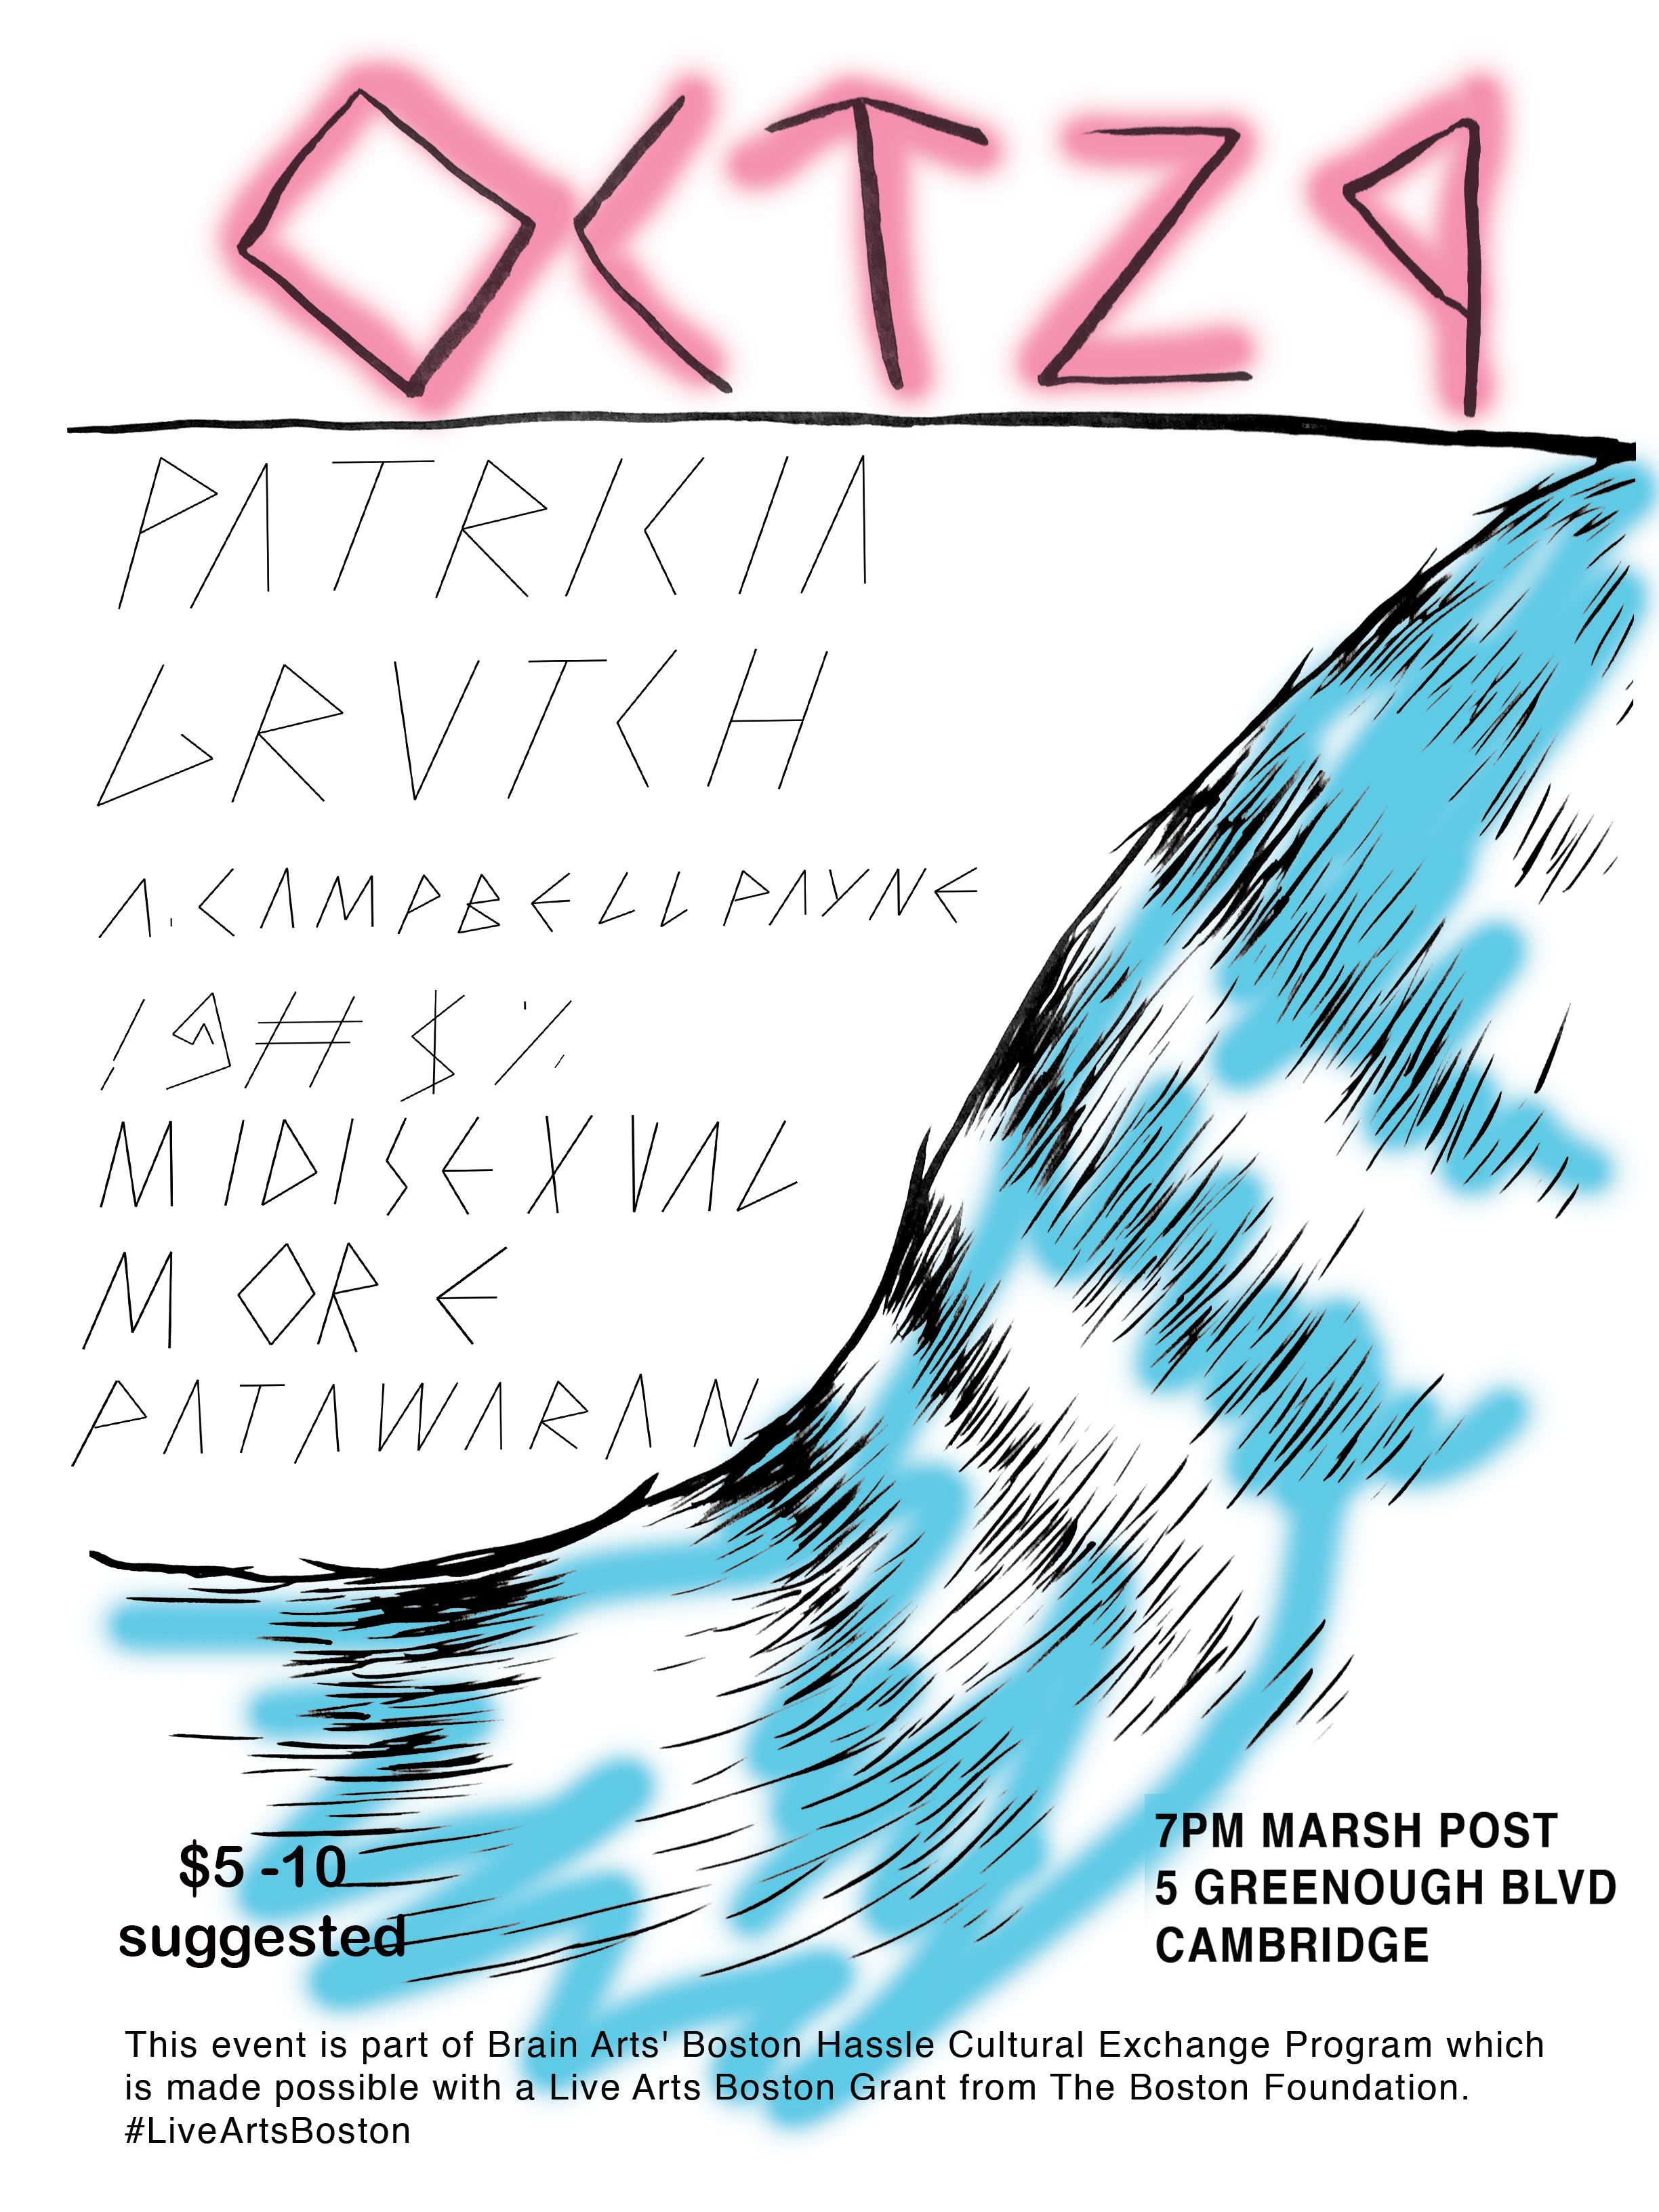 Patrica (nyc), Grutch, A  Campbell Payne, !@#$%, Midisexual, M OR E,  Patawaran | BOSTON HASSLE